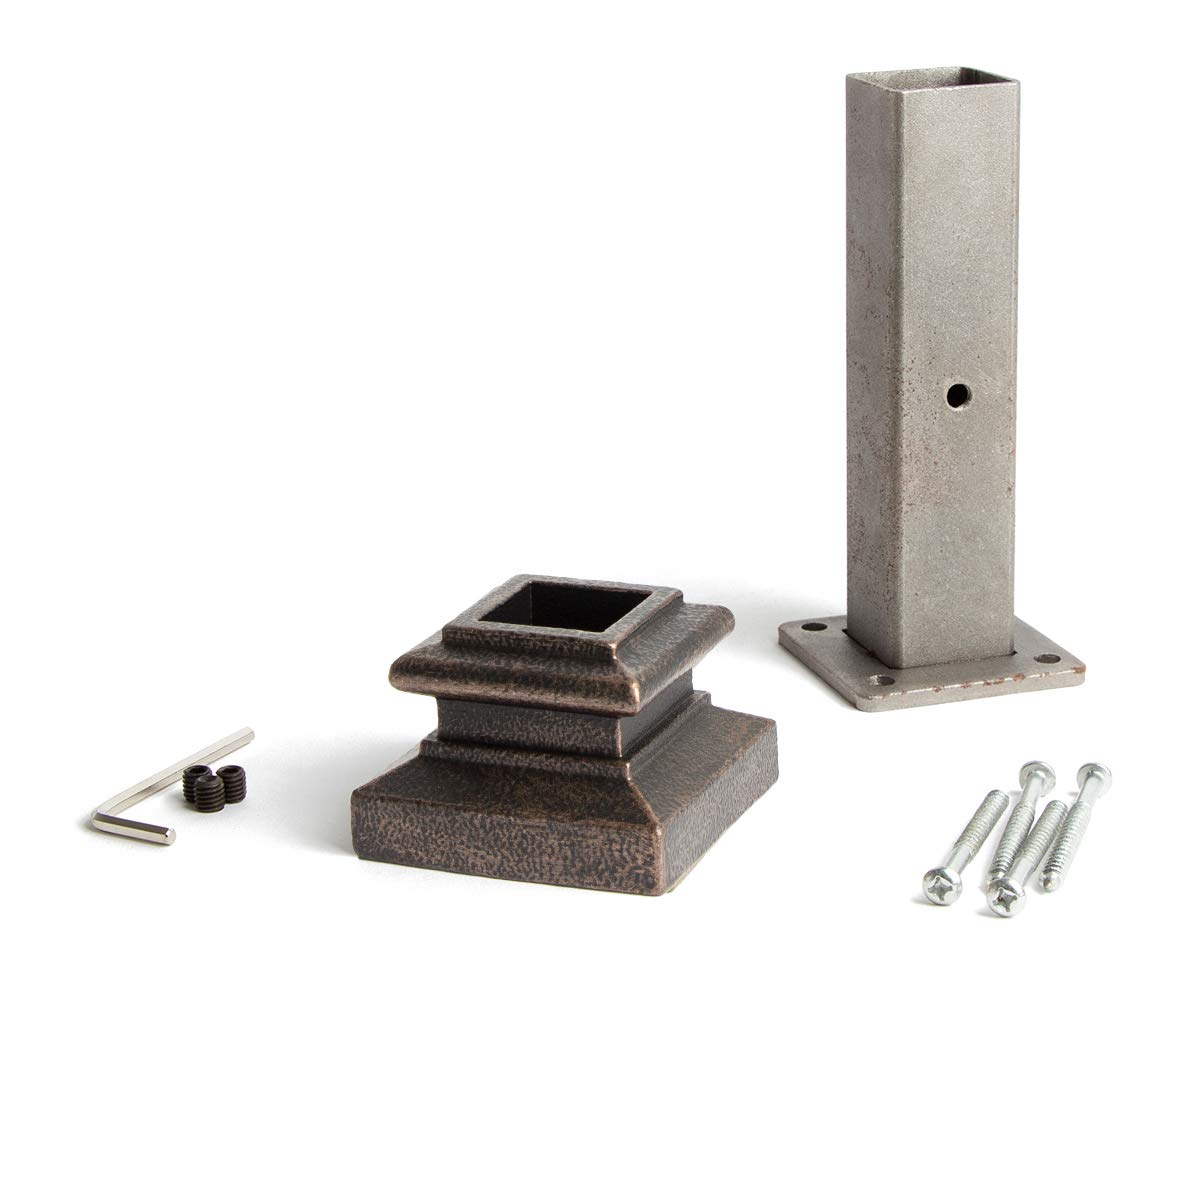 Oil Rubbed Bronze 16.2.3 Newel Mounting Kit for 1-3/16 inch Square Iron Newel Posts for Stair Remodeling by House of Forgings